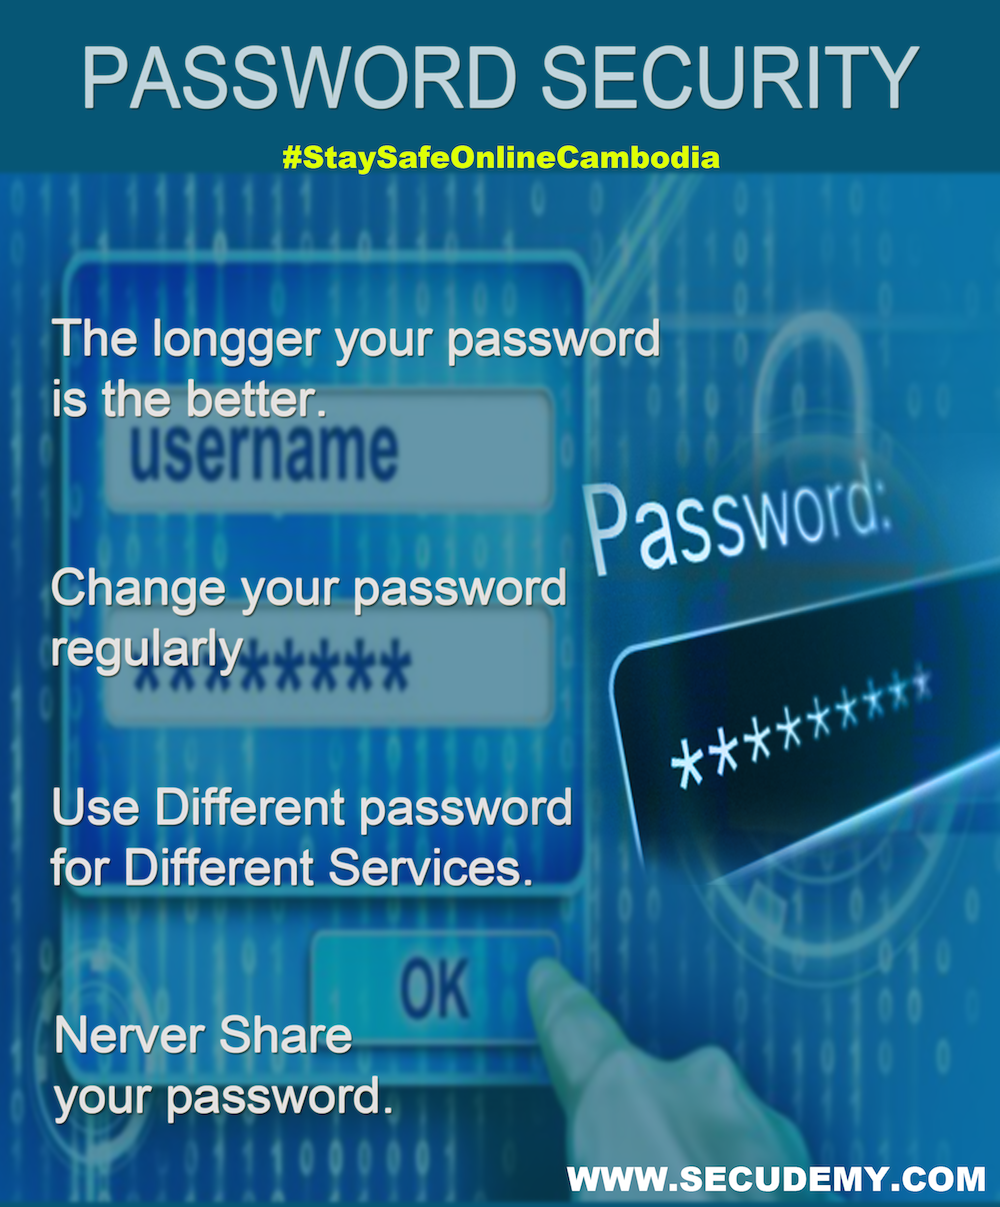 Poster-PasswordSecurity-Small